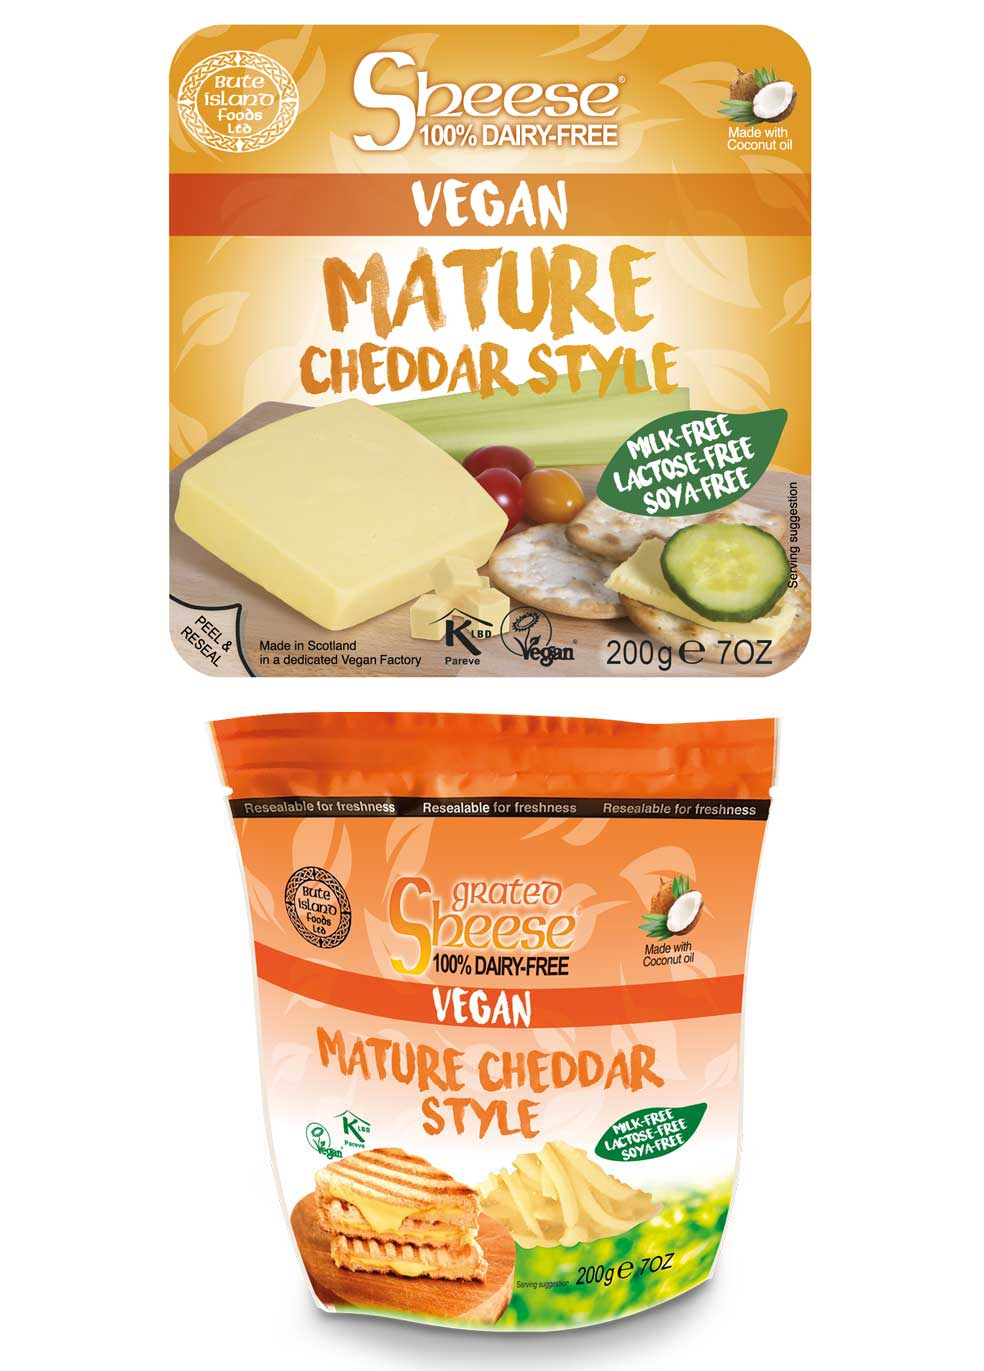 Sheese mature cheddar style